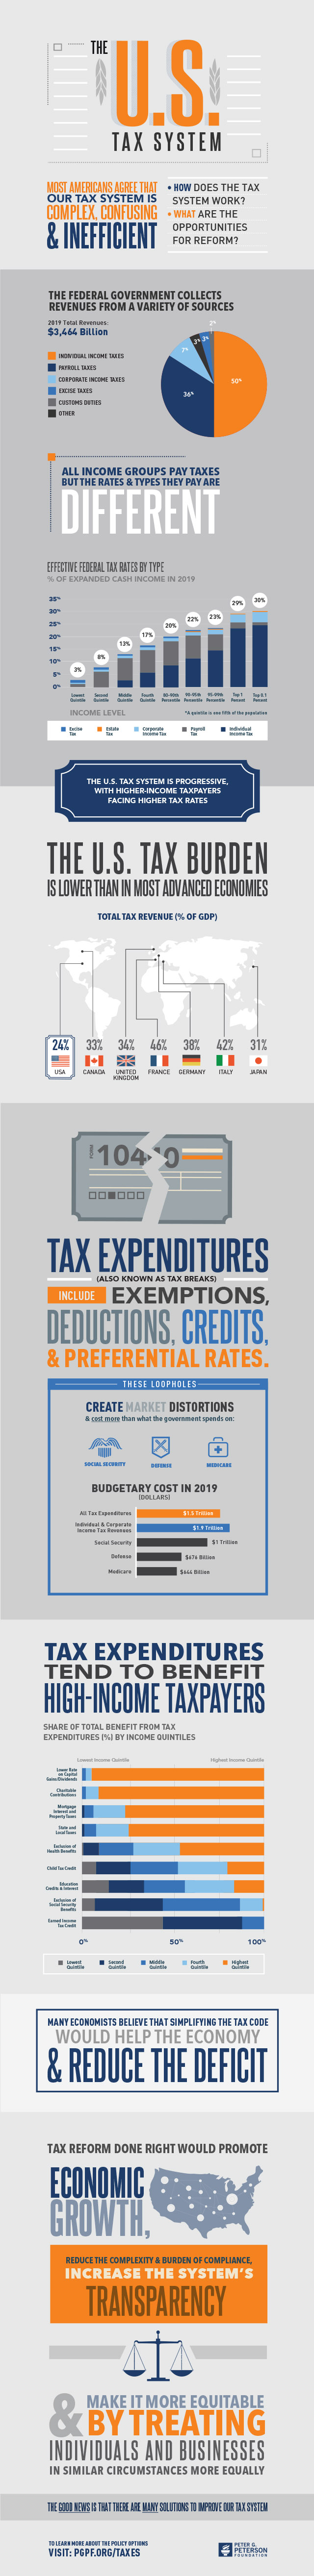 Infographic: How the U.S. Tax System Works